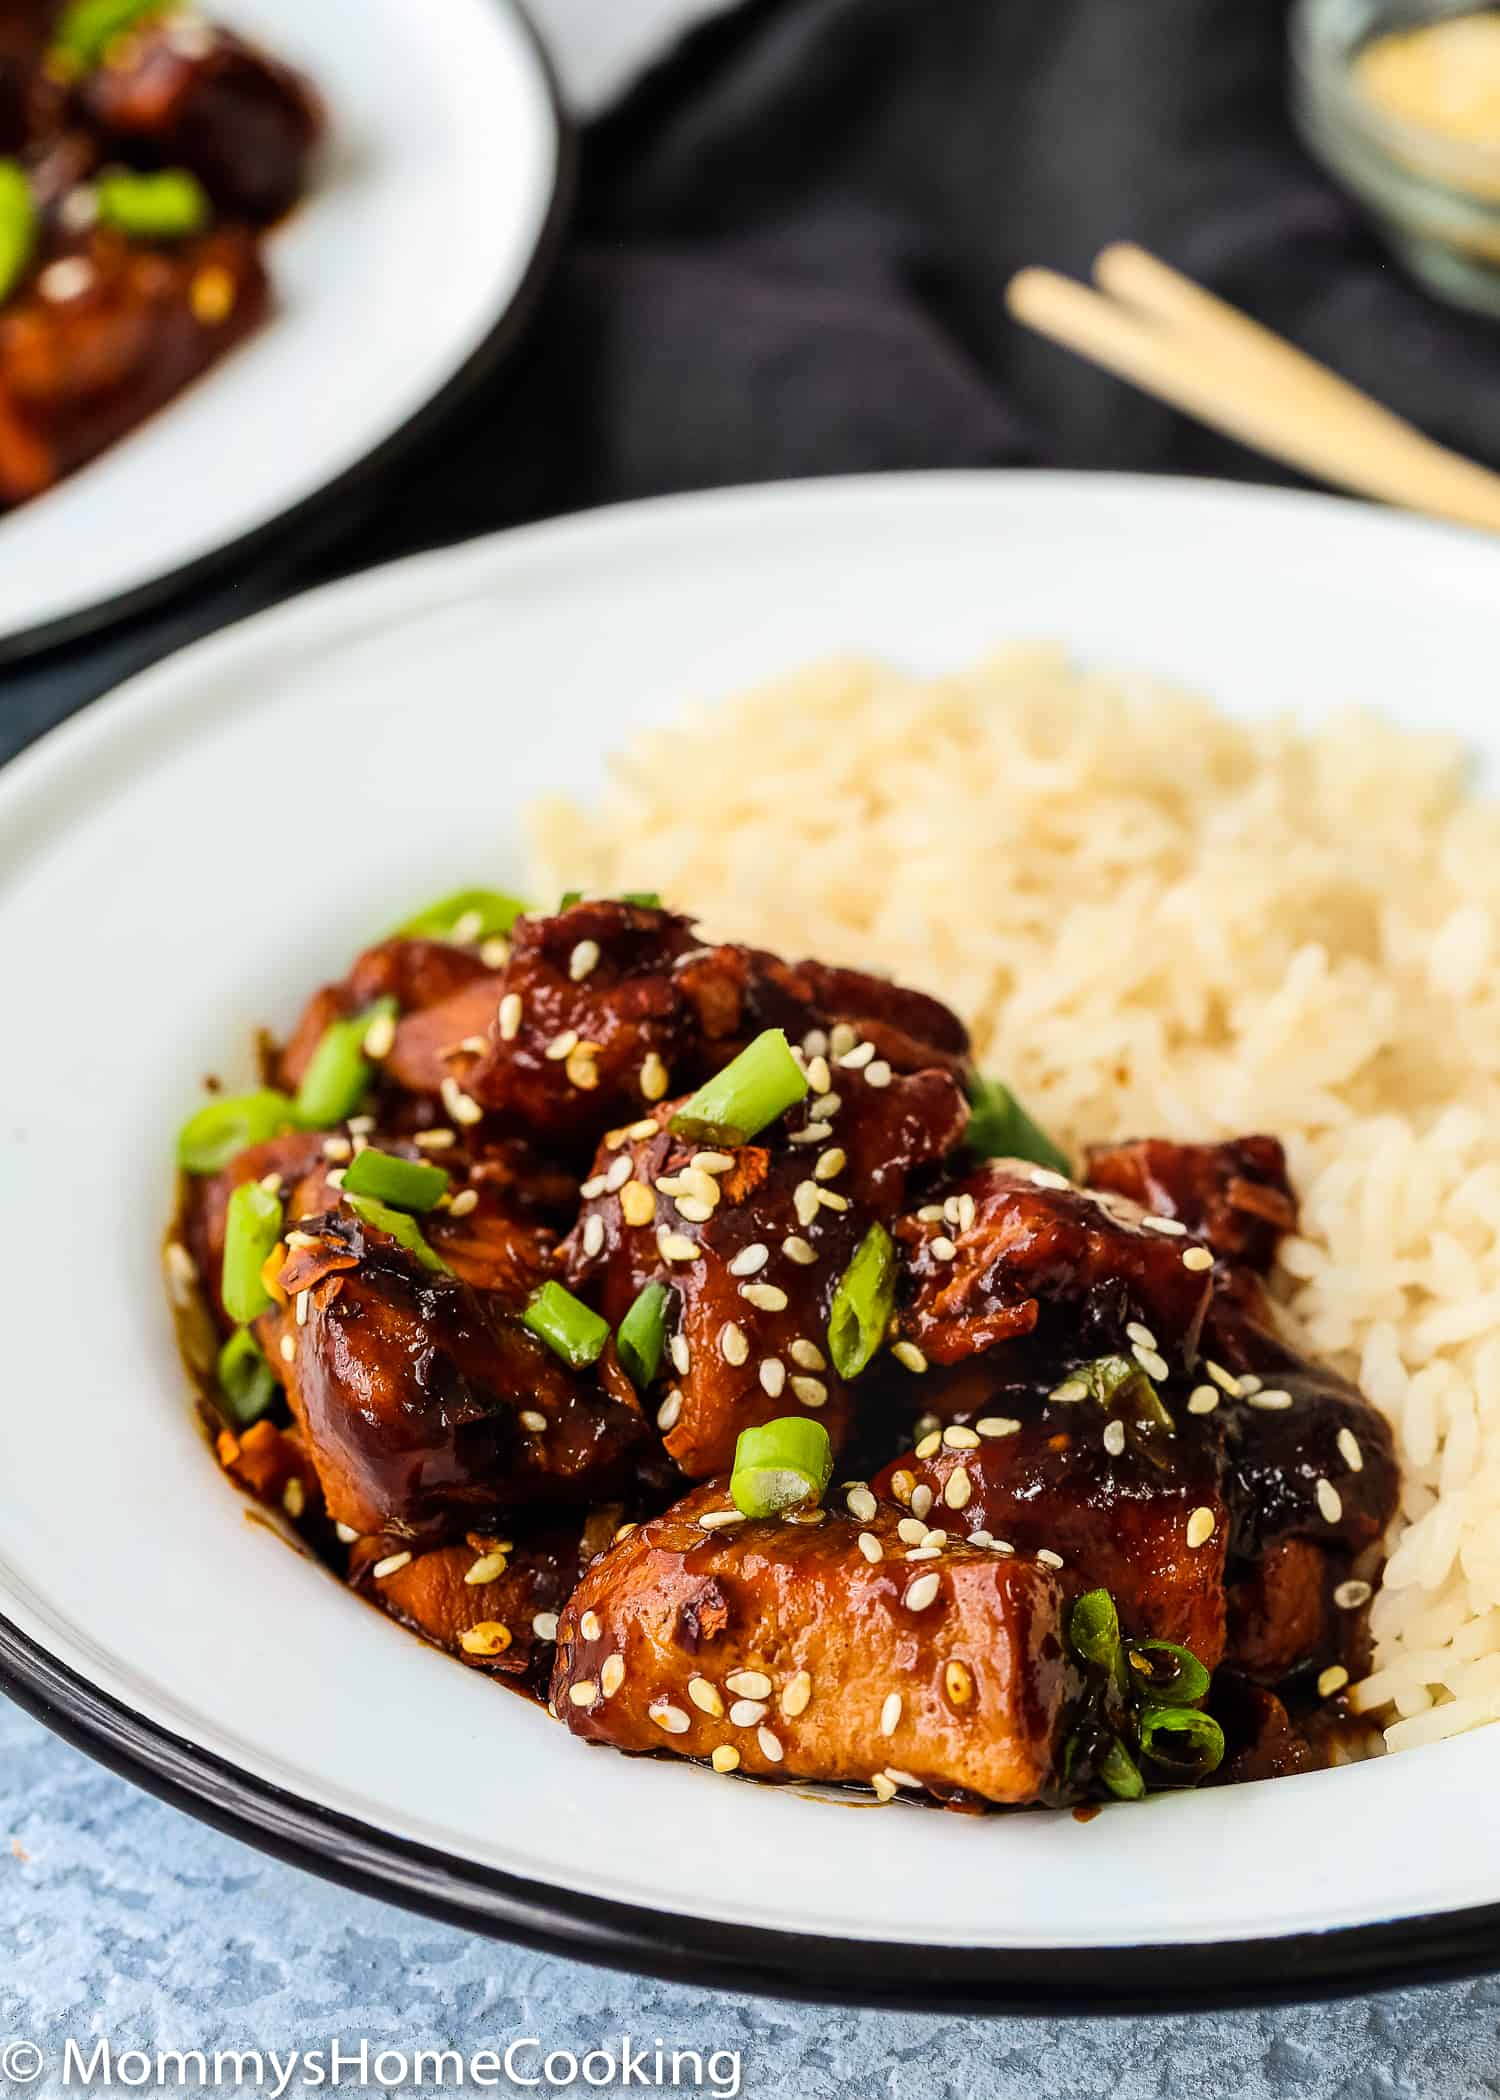 This Easy Instant Pot General Tso's Chicken is a lighter version of the iconic takeout dish! NO deep-frying needed. Tender pieces of chicken breast smothered in an amazing sweet and savory sauce with a little bit of heat! Make better than takeout right at home. Pressure cooker and slow cooker instructions included. https://mommyshomecooking.com